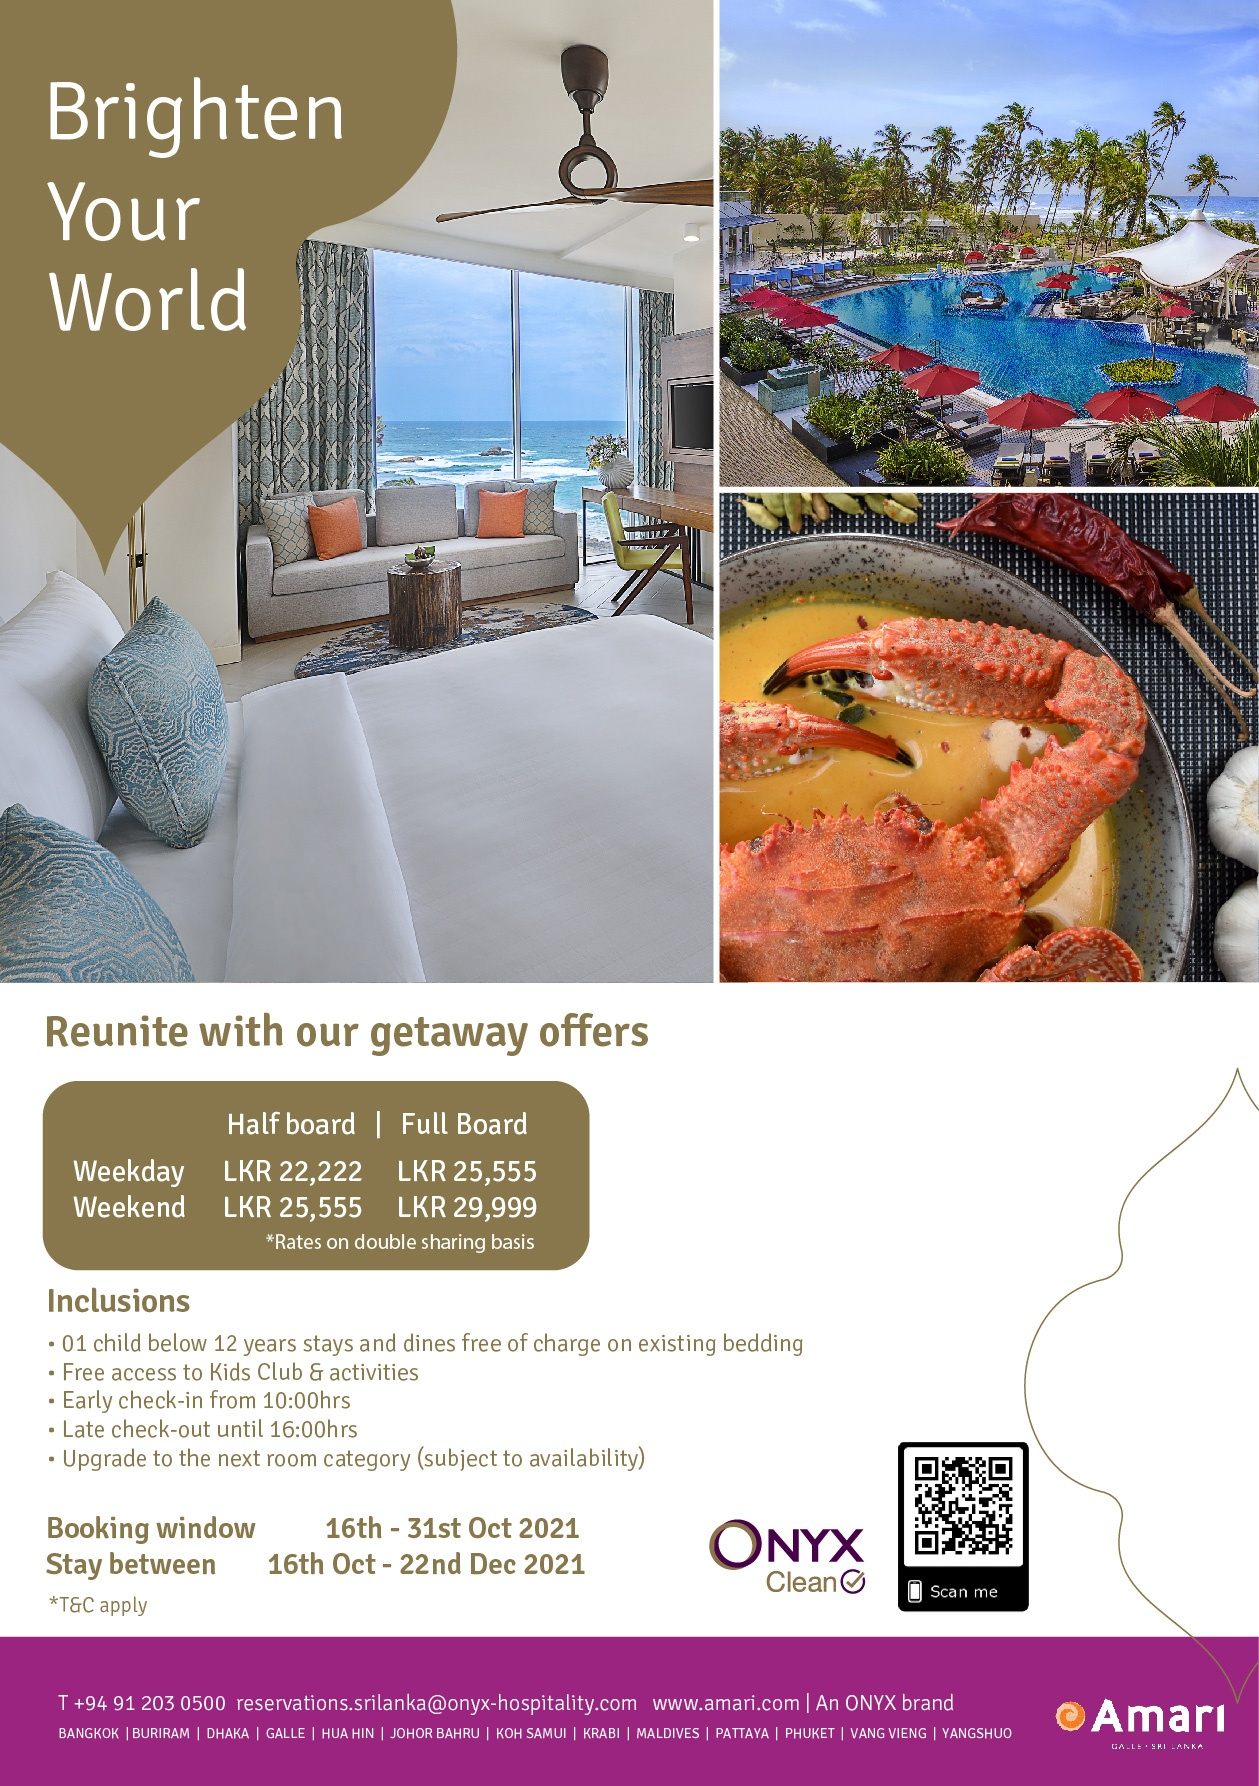 Reunite with our getaway offers